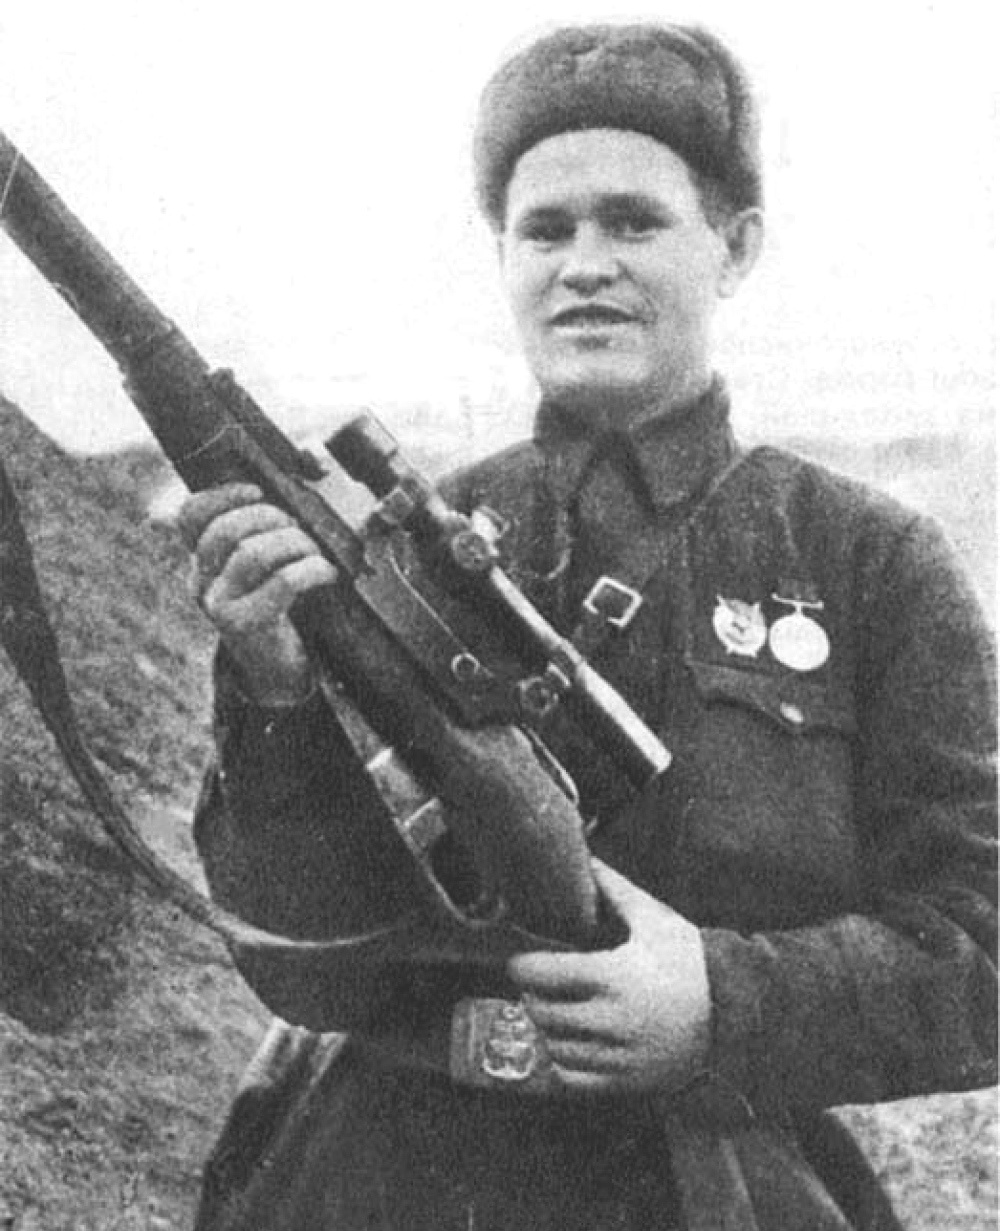 V. G. Zaitsev with his sniper rifle